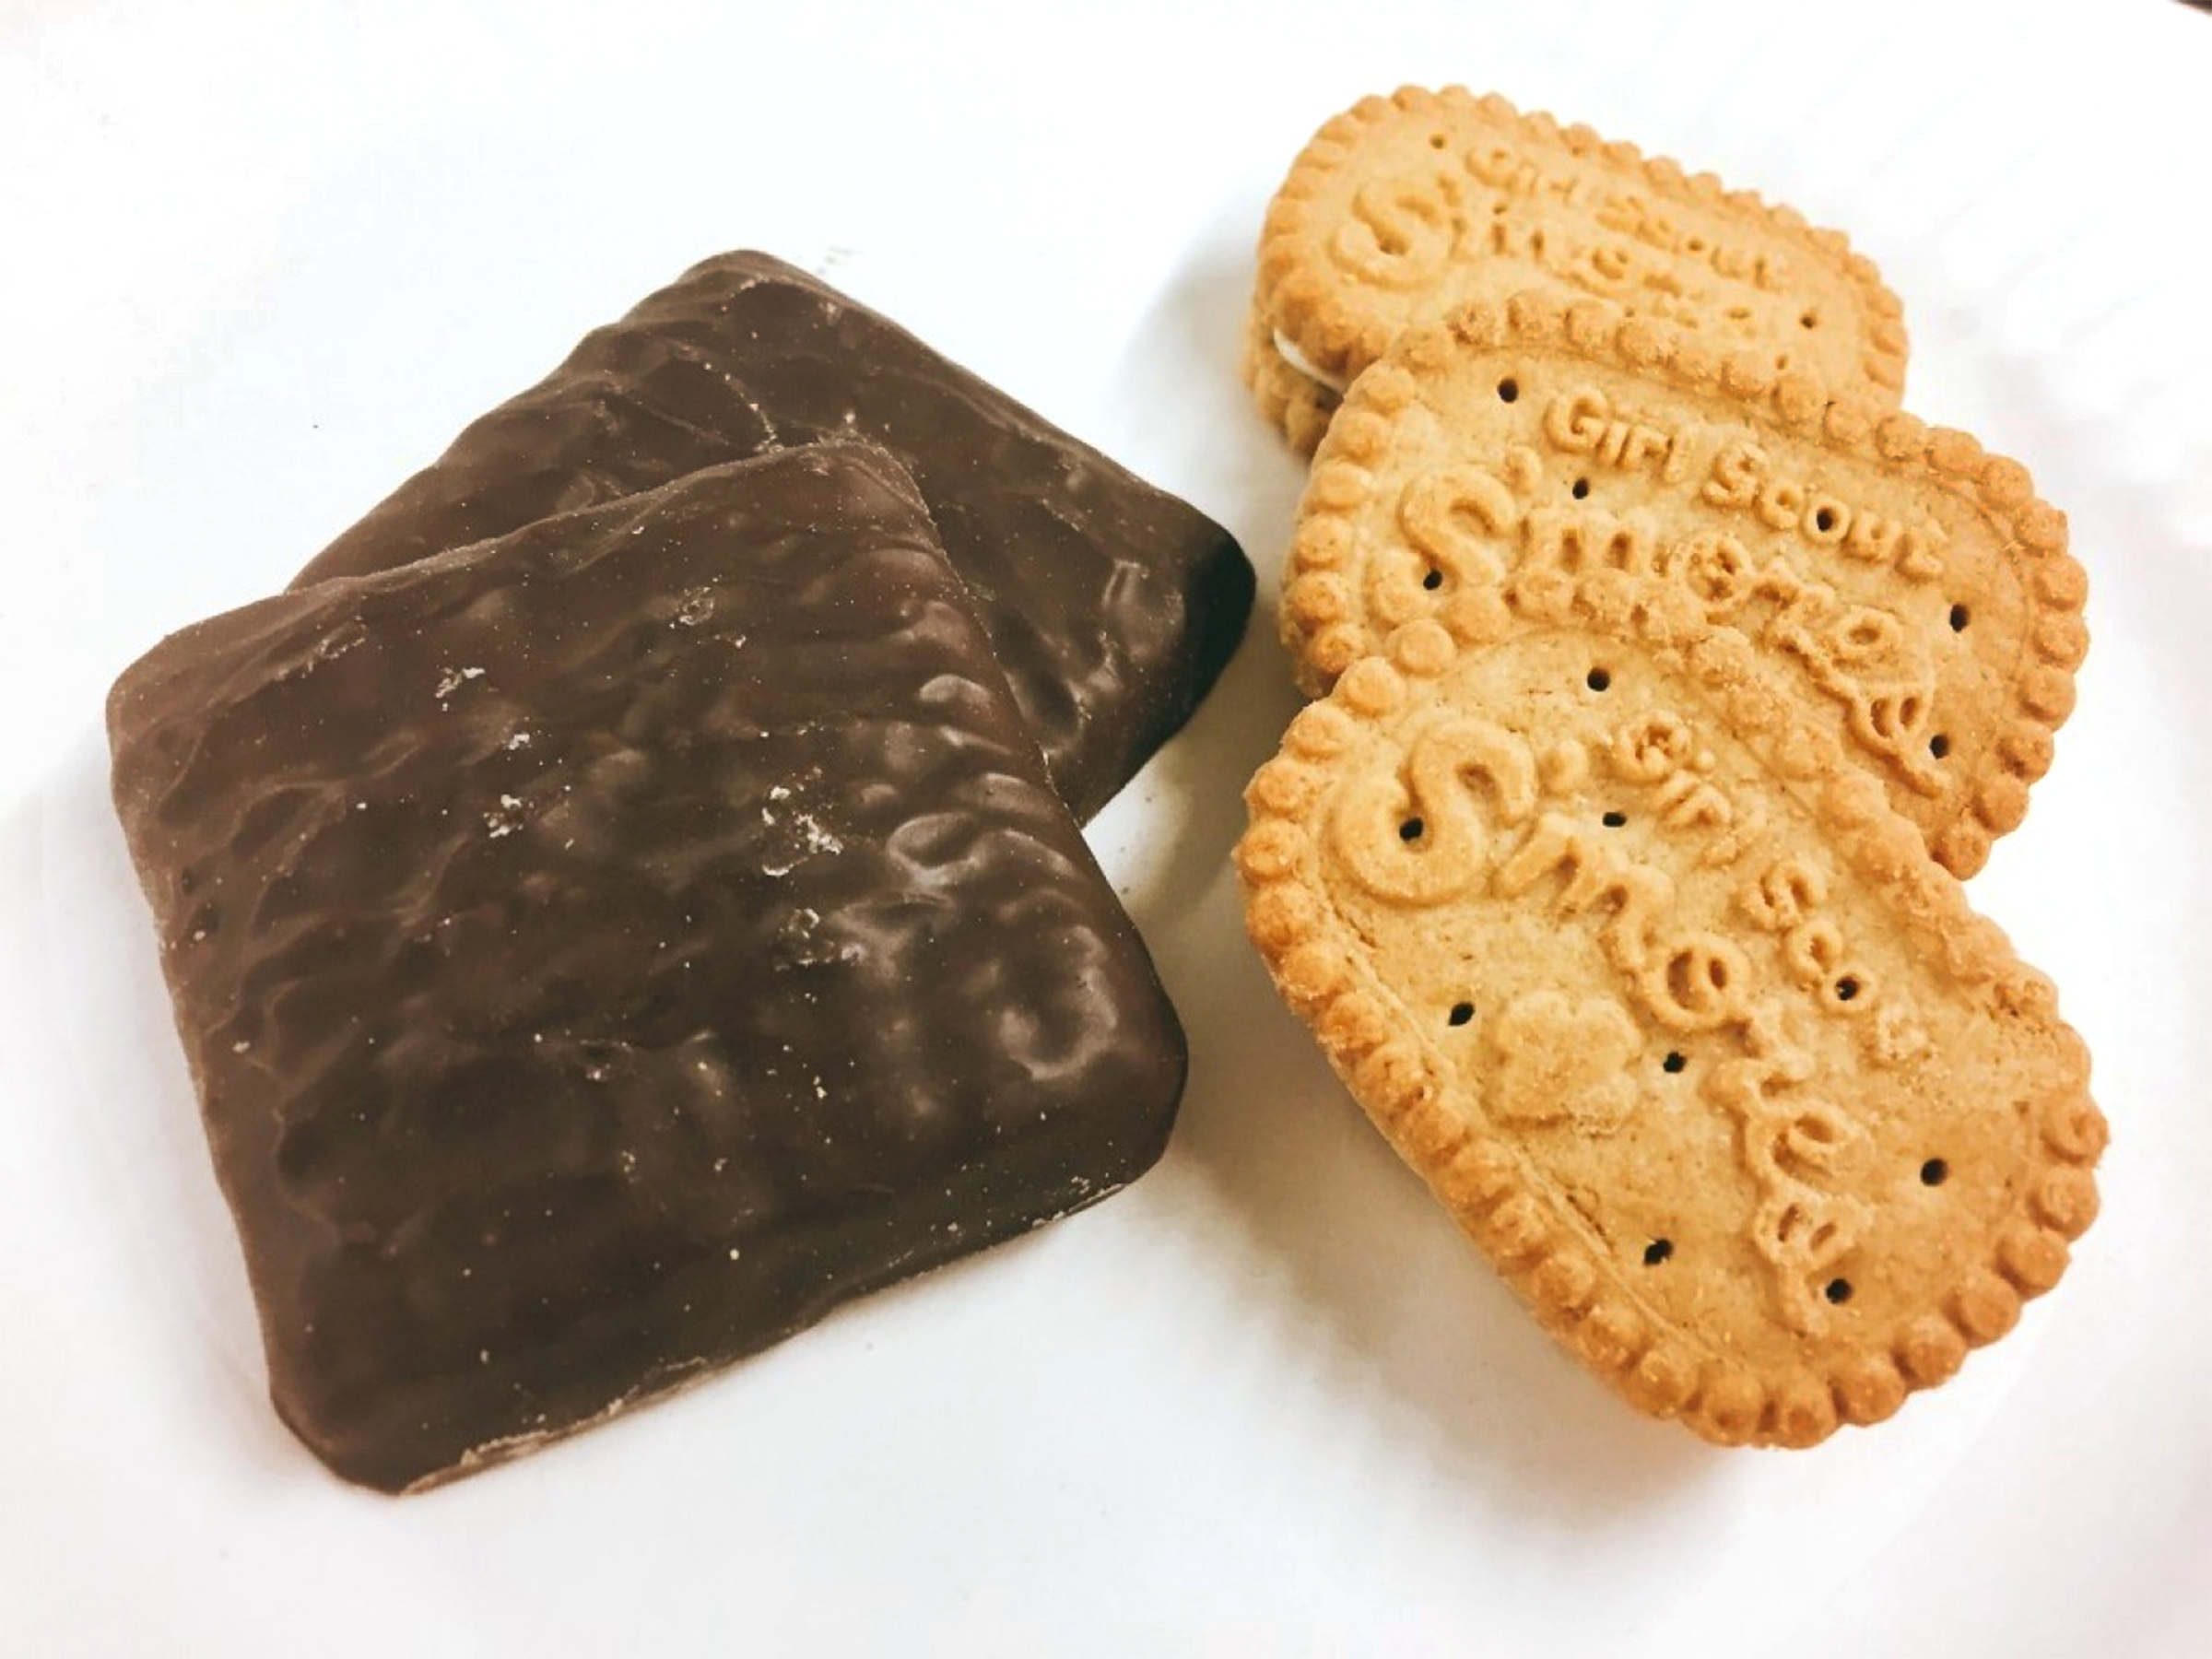 The new Smores Girl Scout cookies from the Girl Scouts two bakeries.